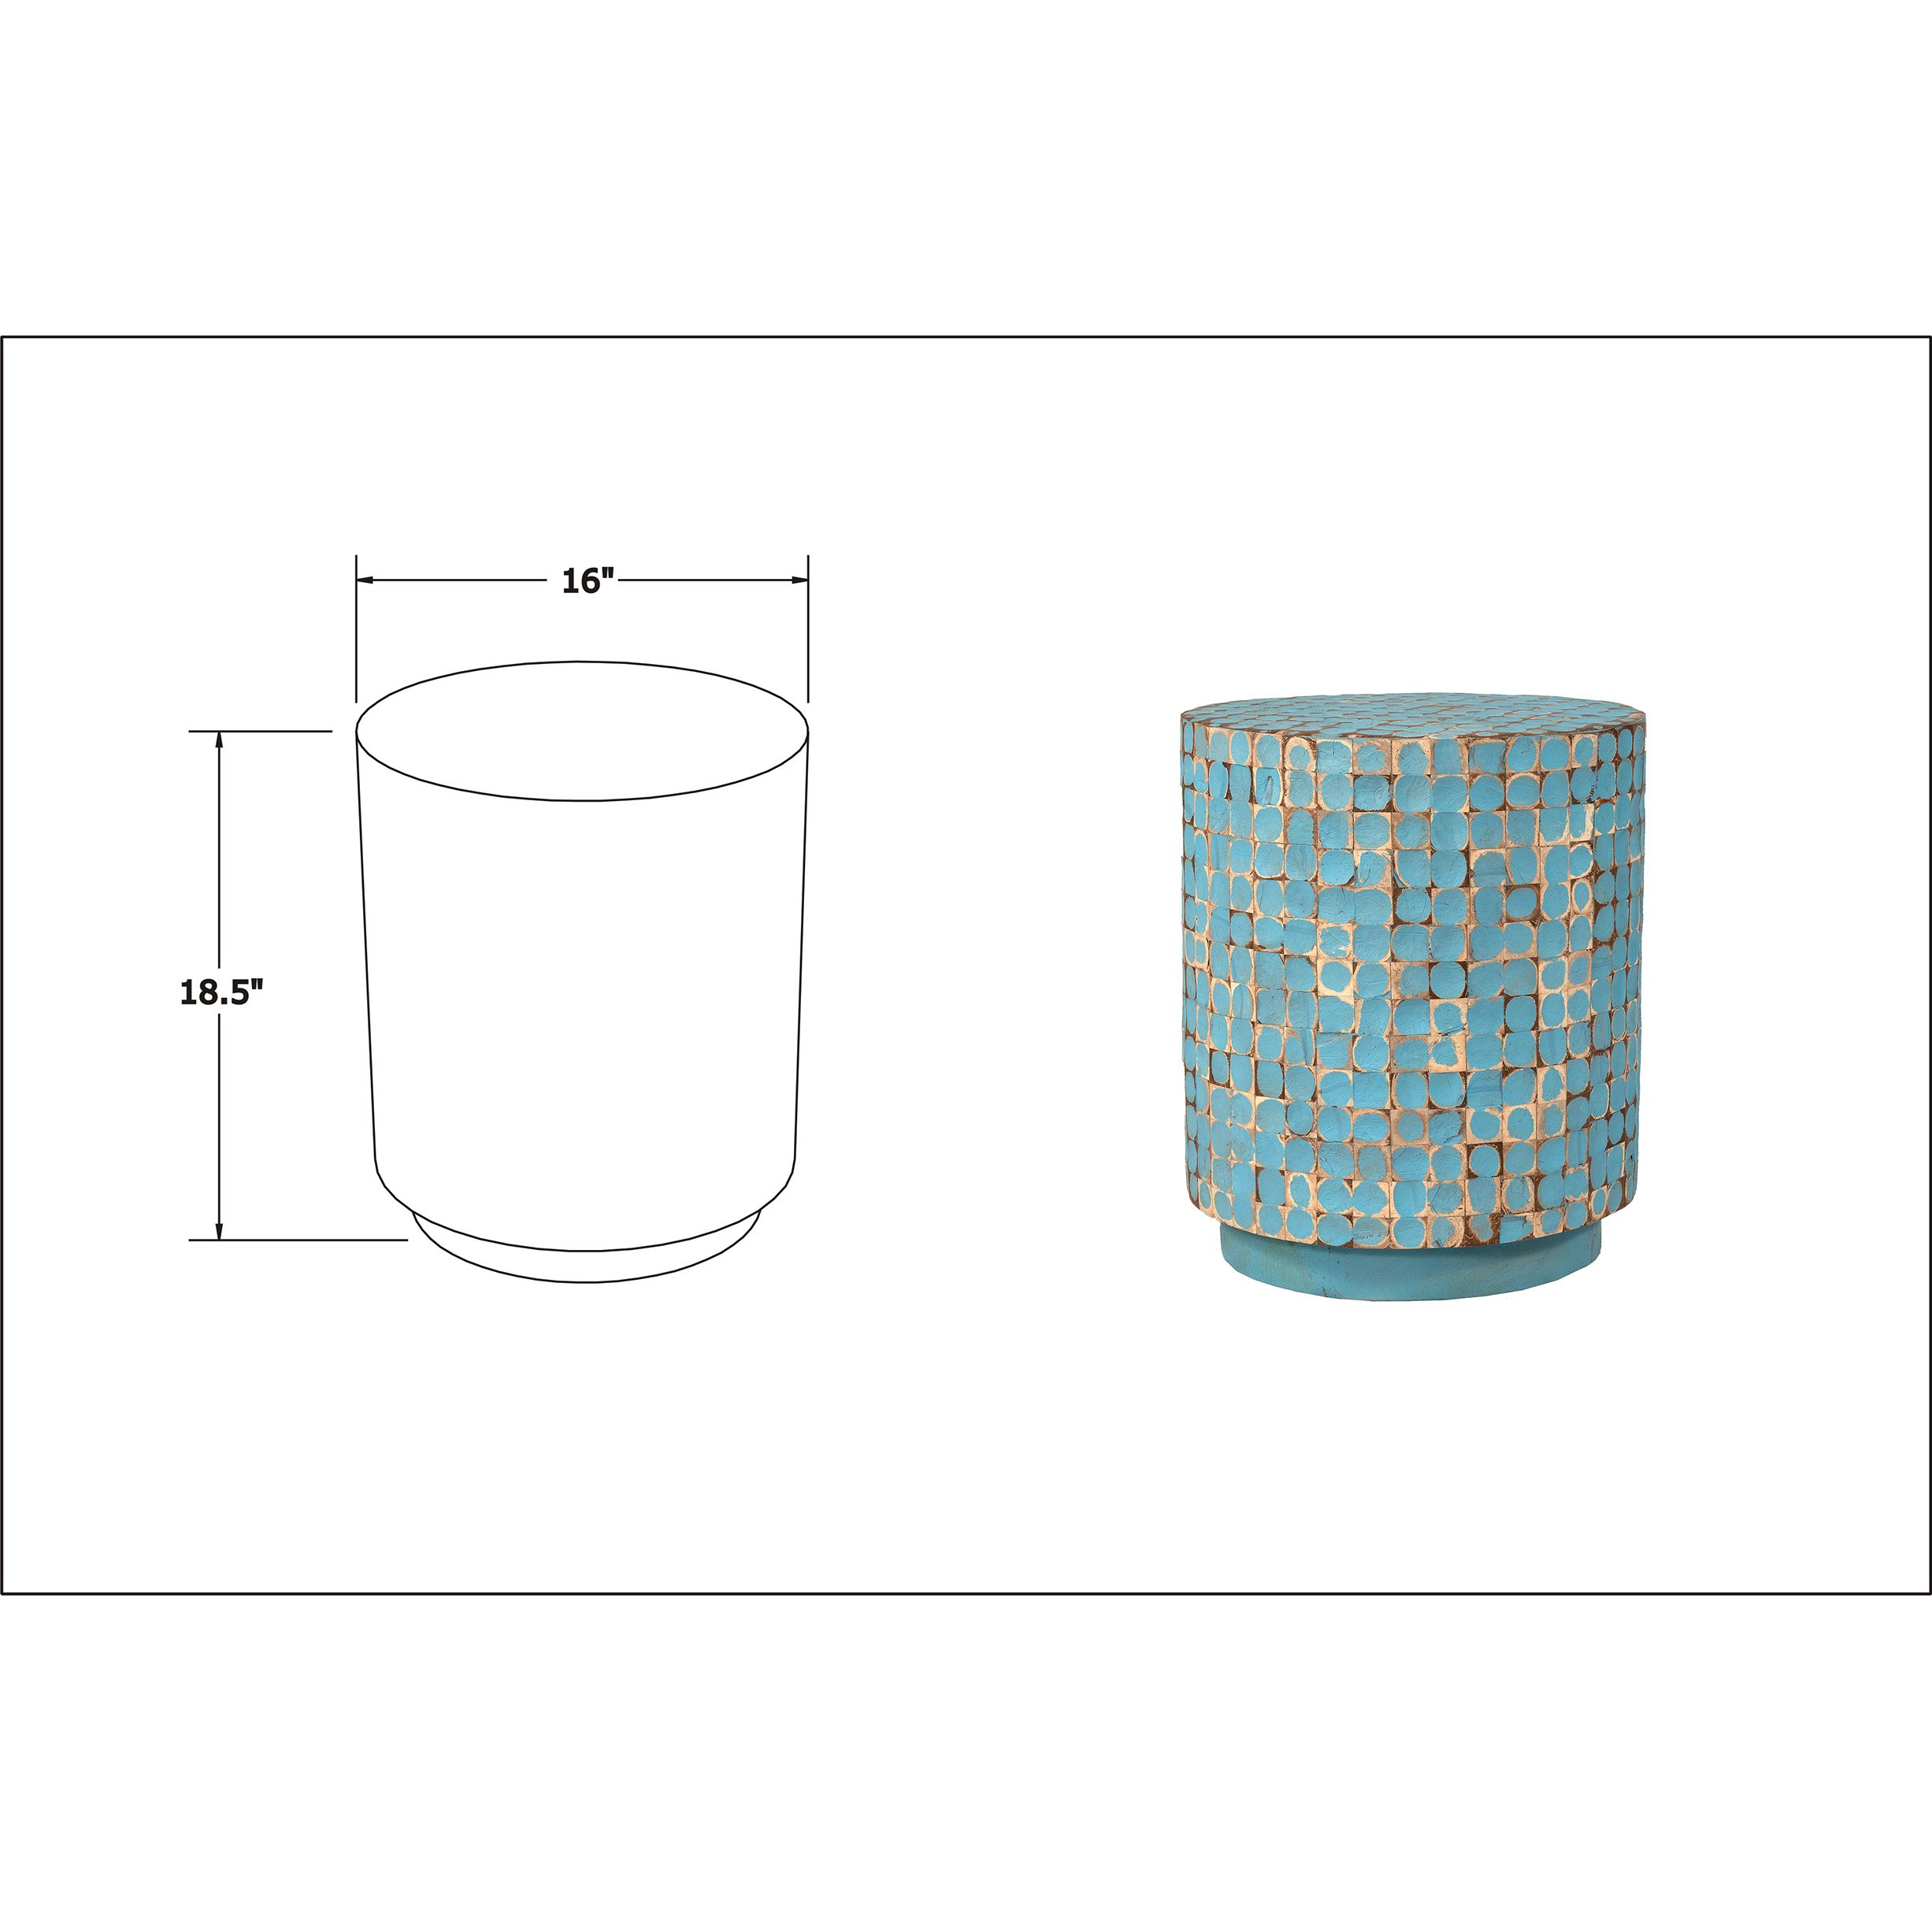 east main brillion blue round coconut shell accent table mains free shipping today foot console patio umbrella modern quilted runner patterns egg shaped coffee concrete furniture